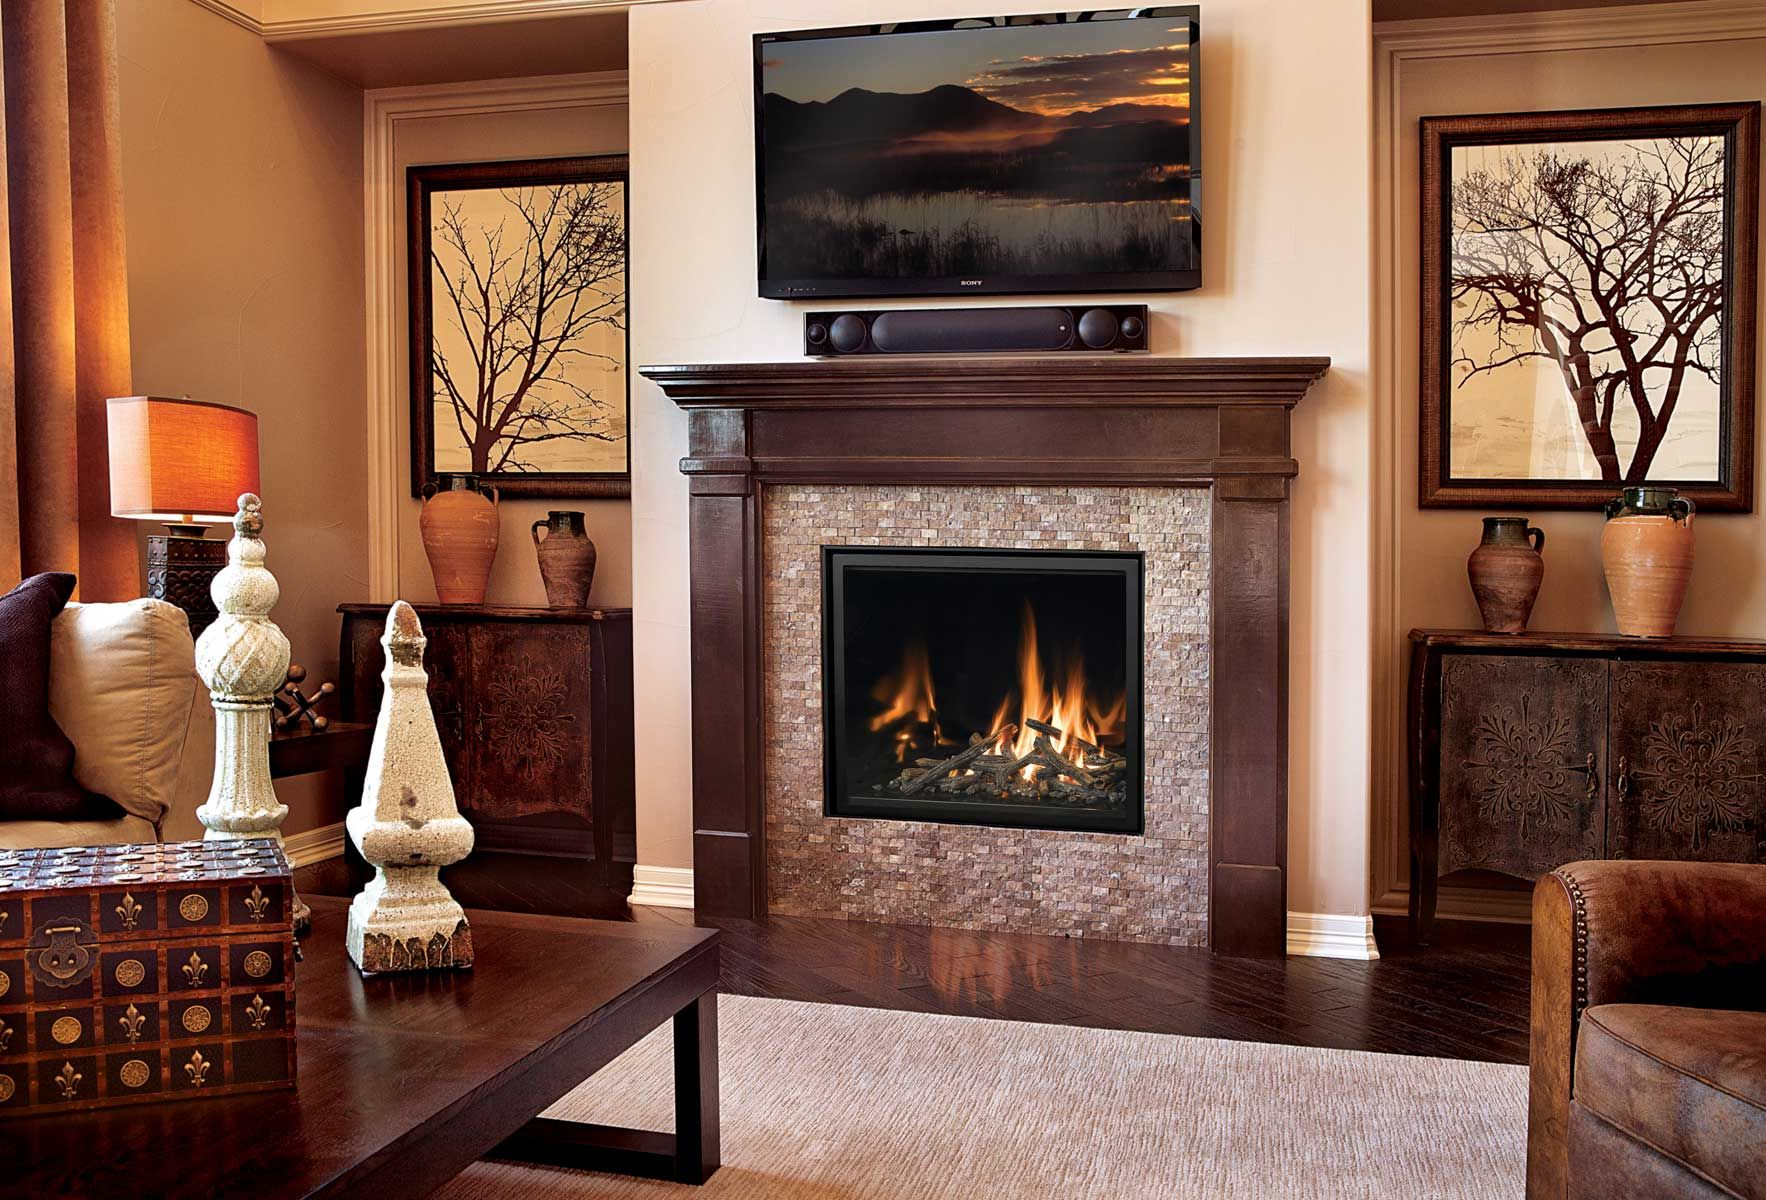 Classic fireplace design with a modern twist